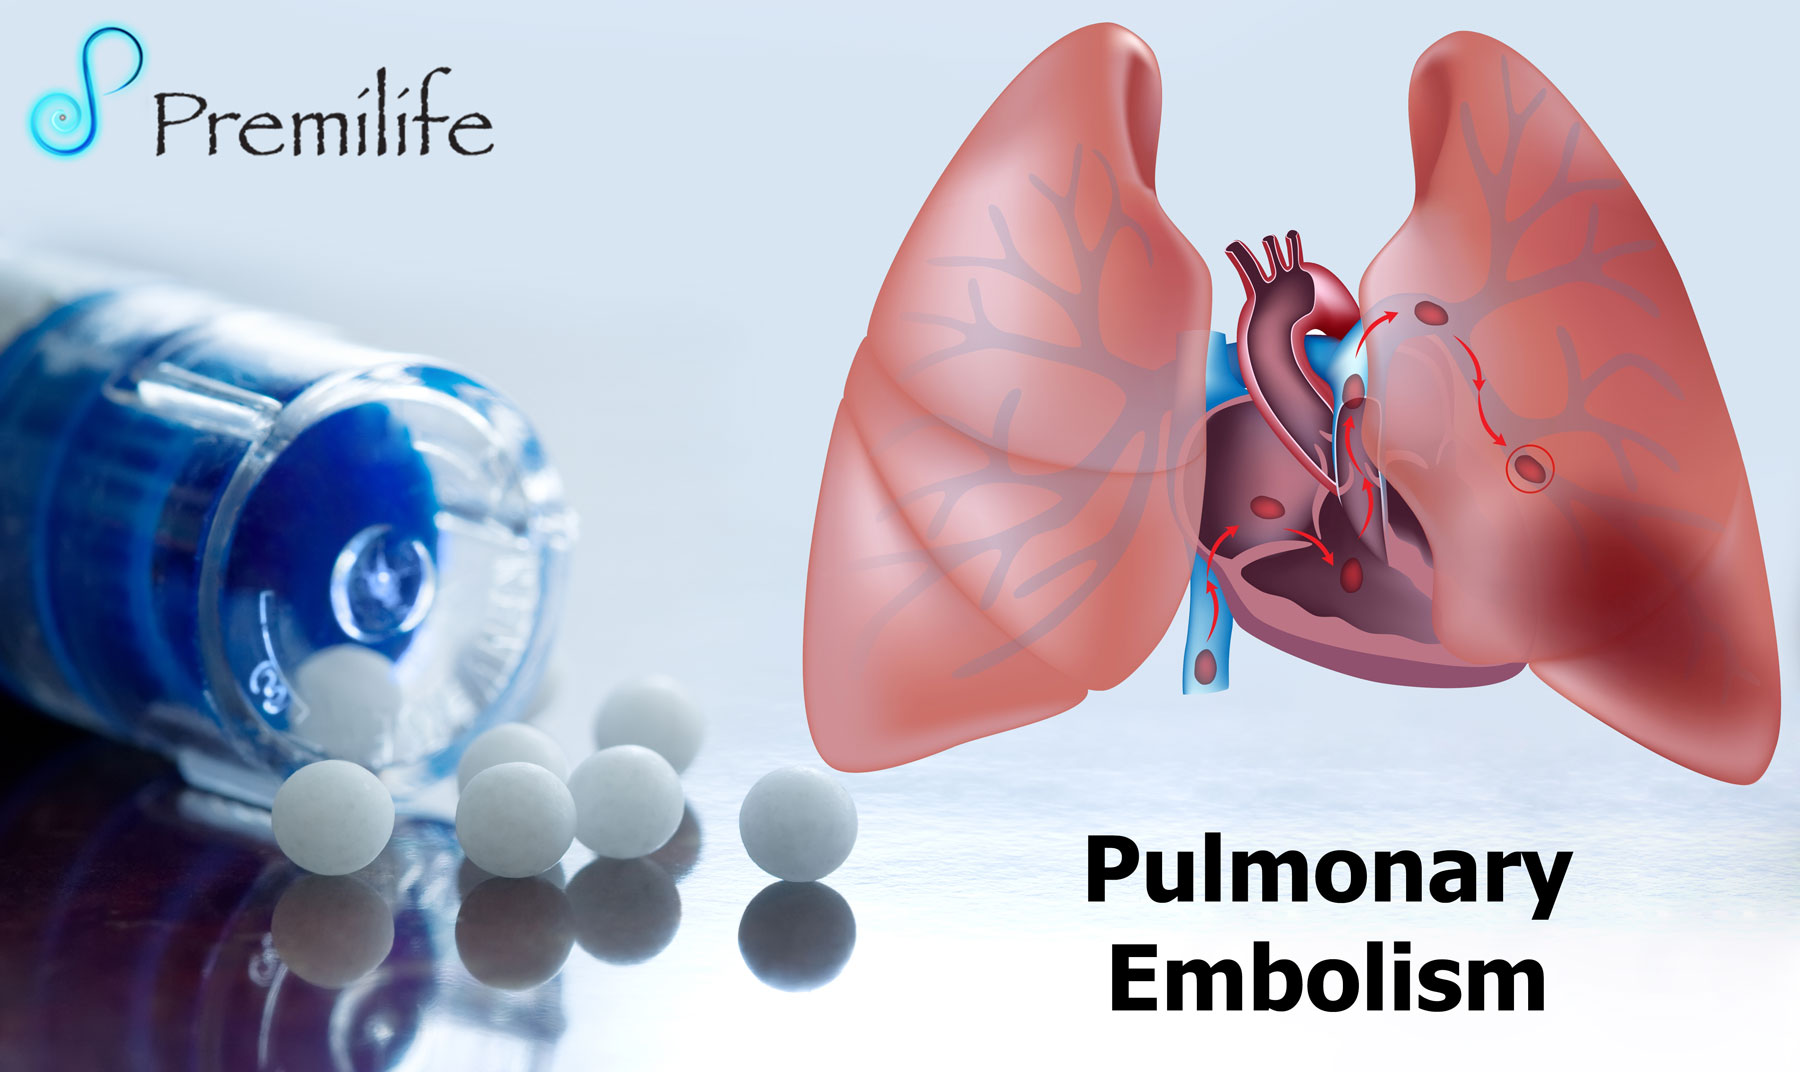 pulmenary embolism Detecting pulmonary embolism in adults is difficult, but discerning it in children is quite another challenge all together.